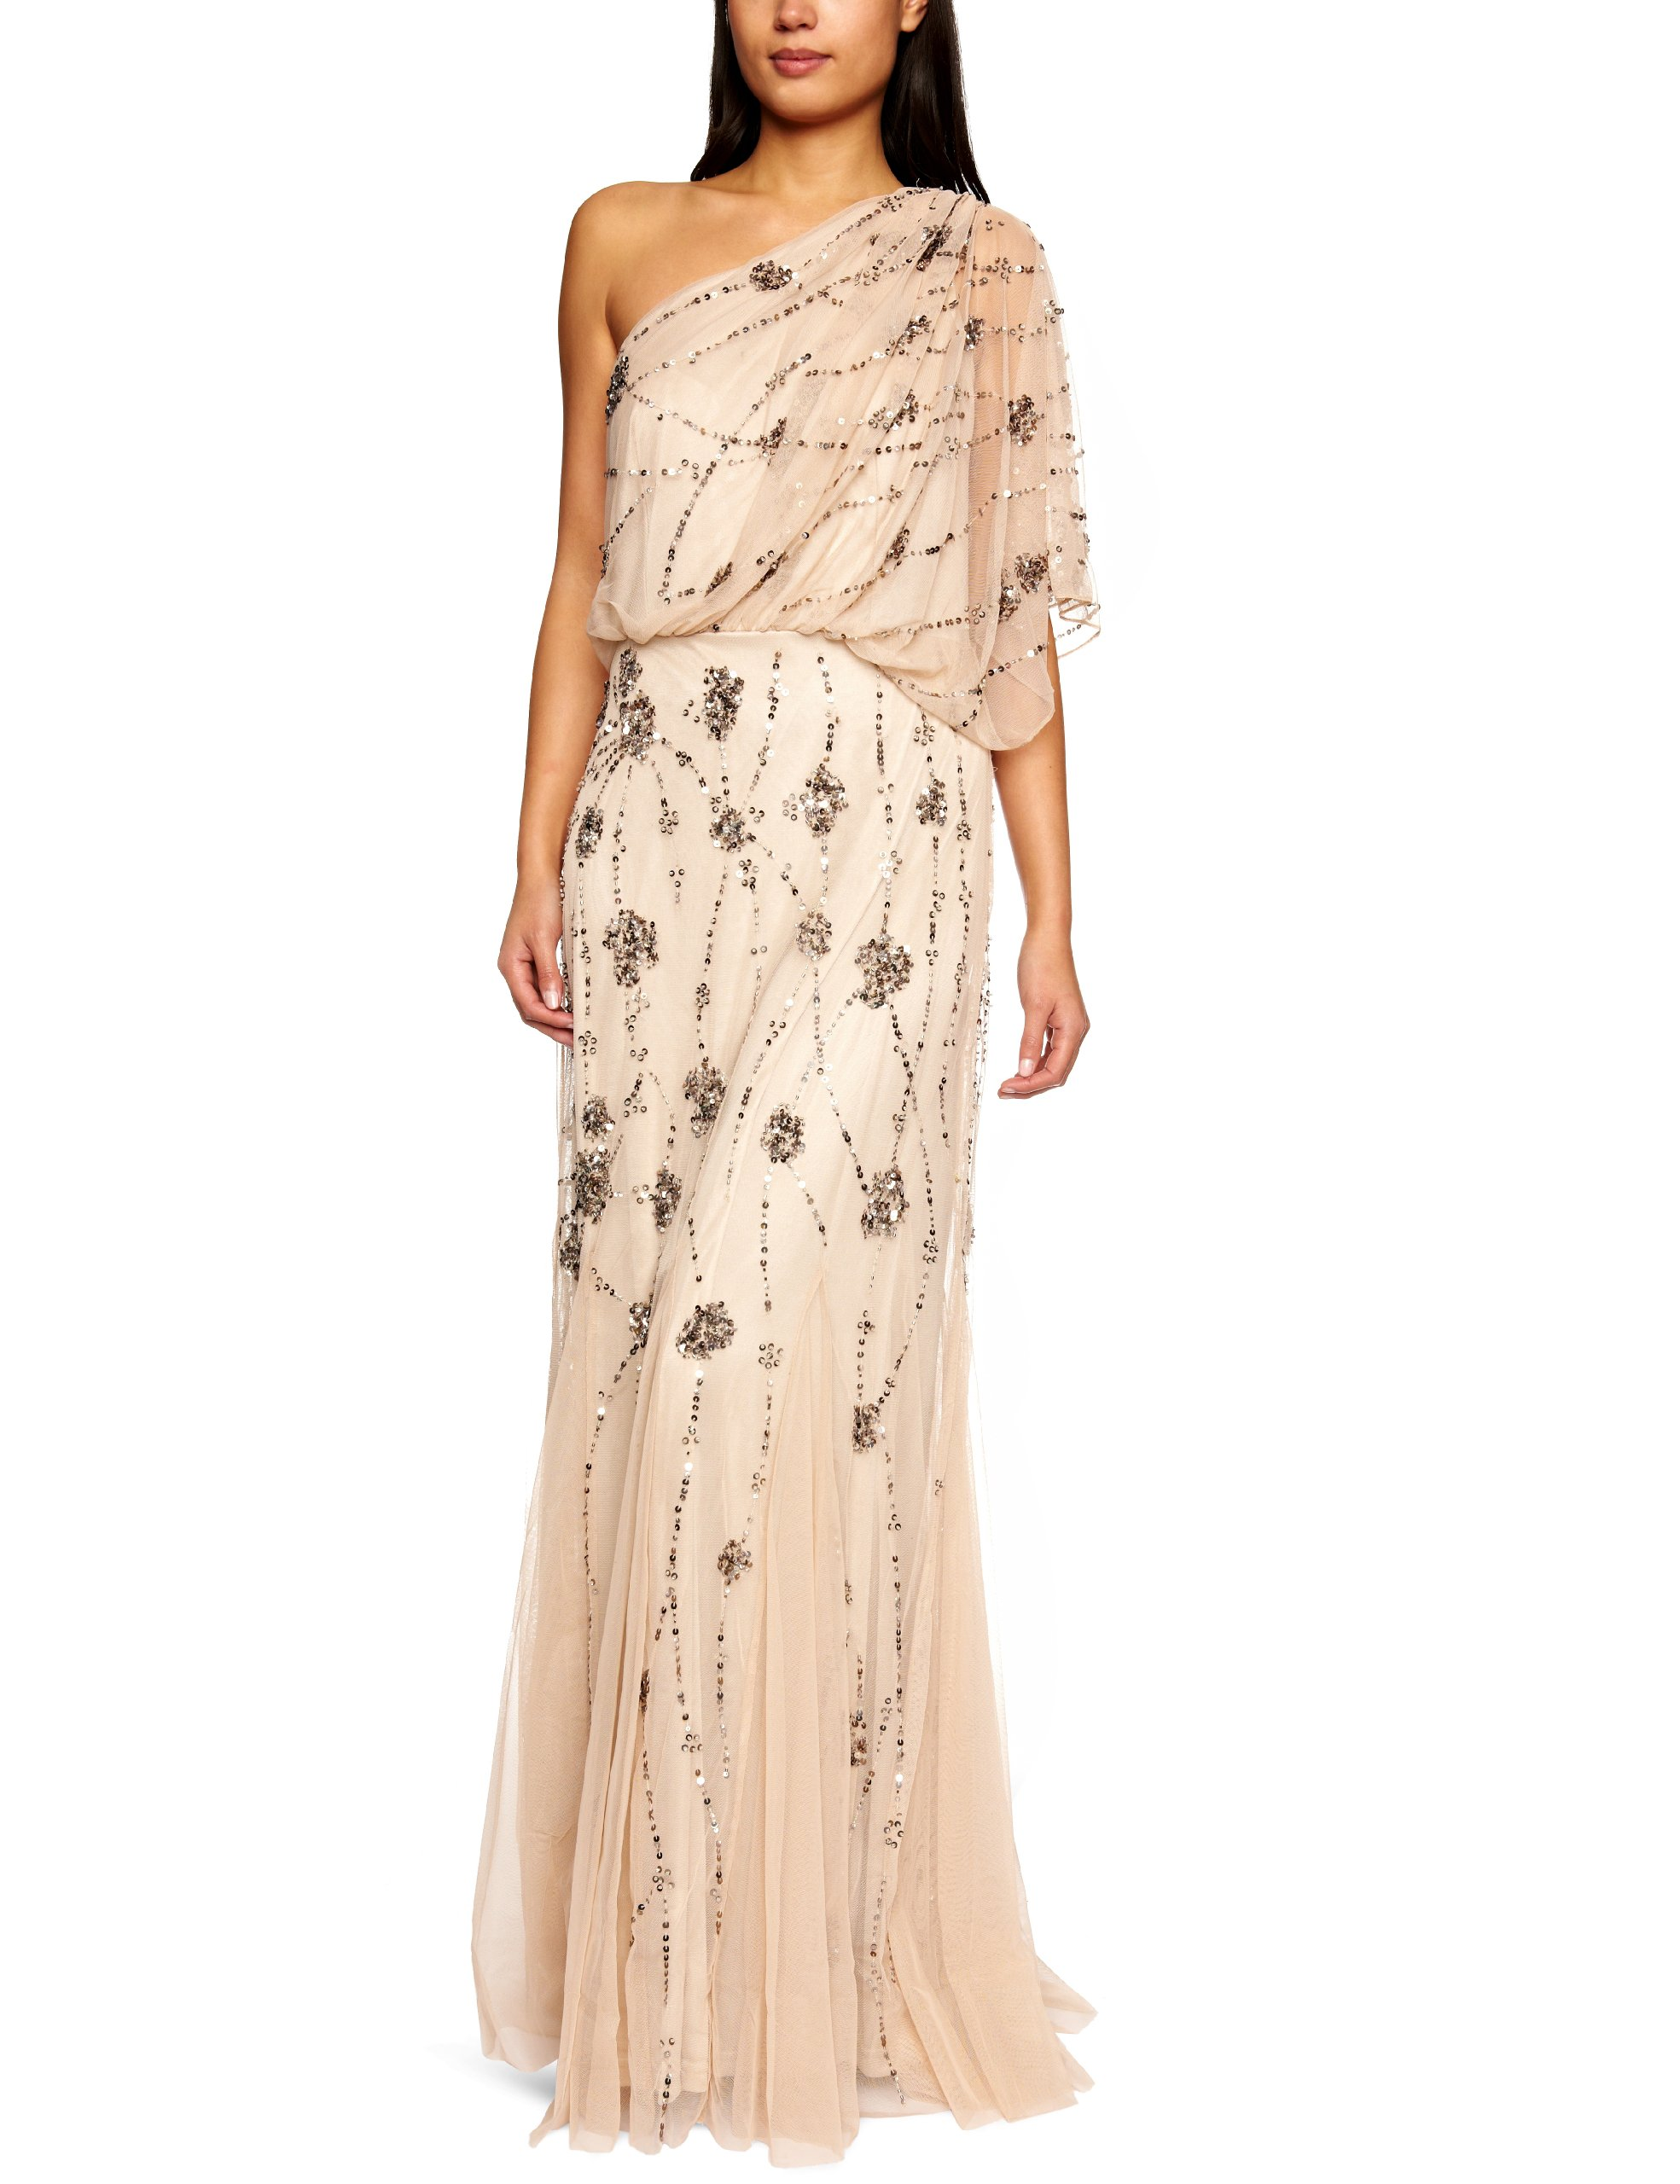 Adrianna Papell Women's One Shoulder Beaded Blousant Dress, Nude, 14